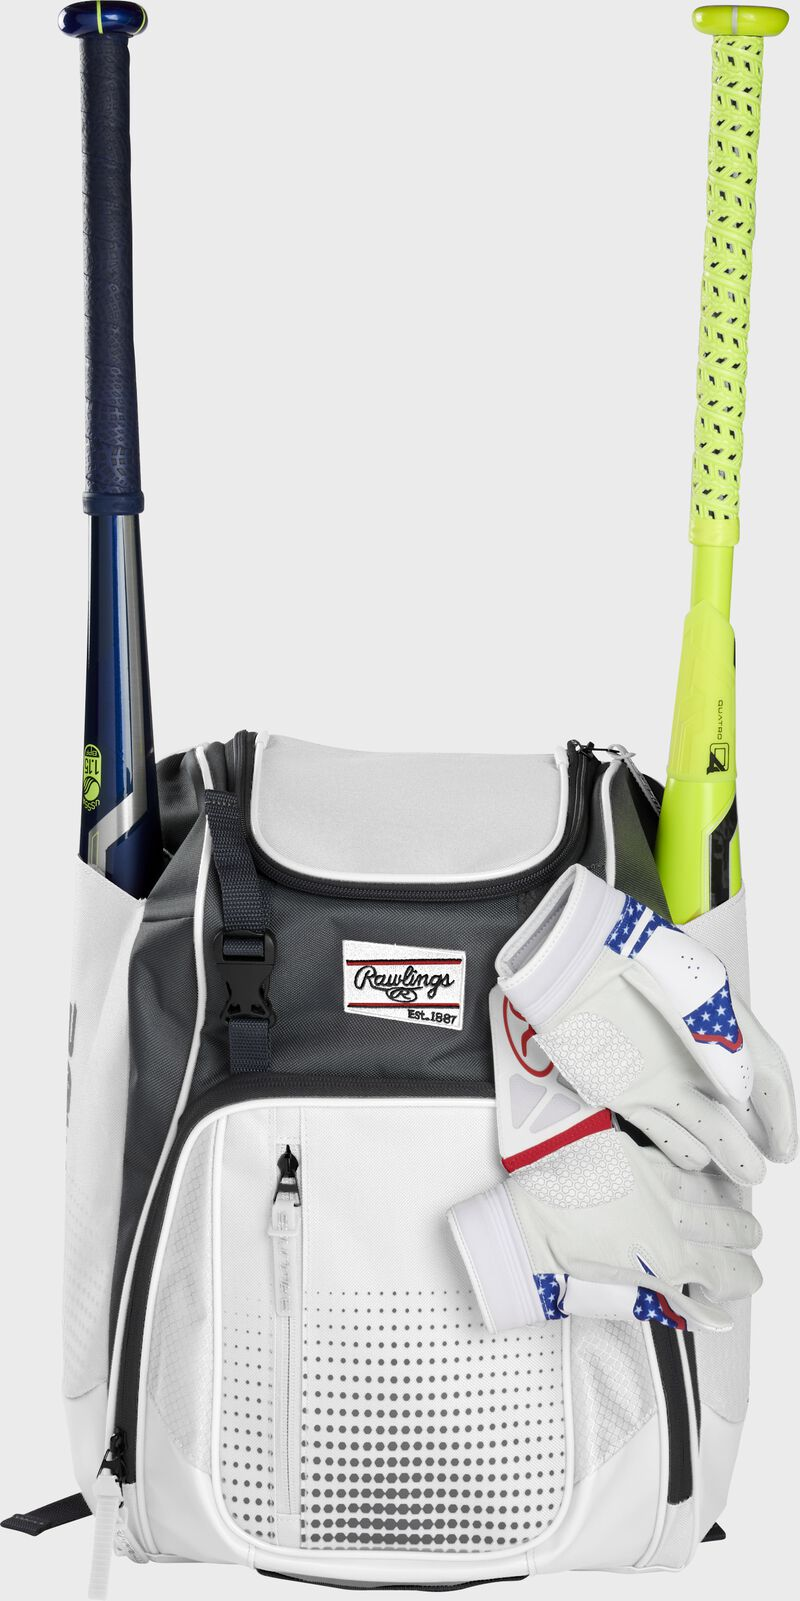 A white Franchise backpack with two bats in the sides and batting gloves on the front Velcro strap - SKU: FRANBP-W